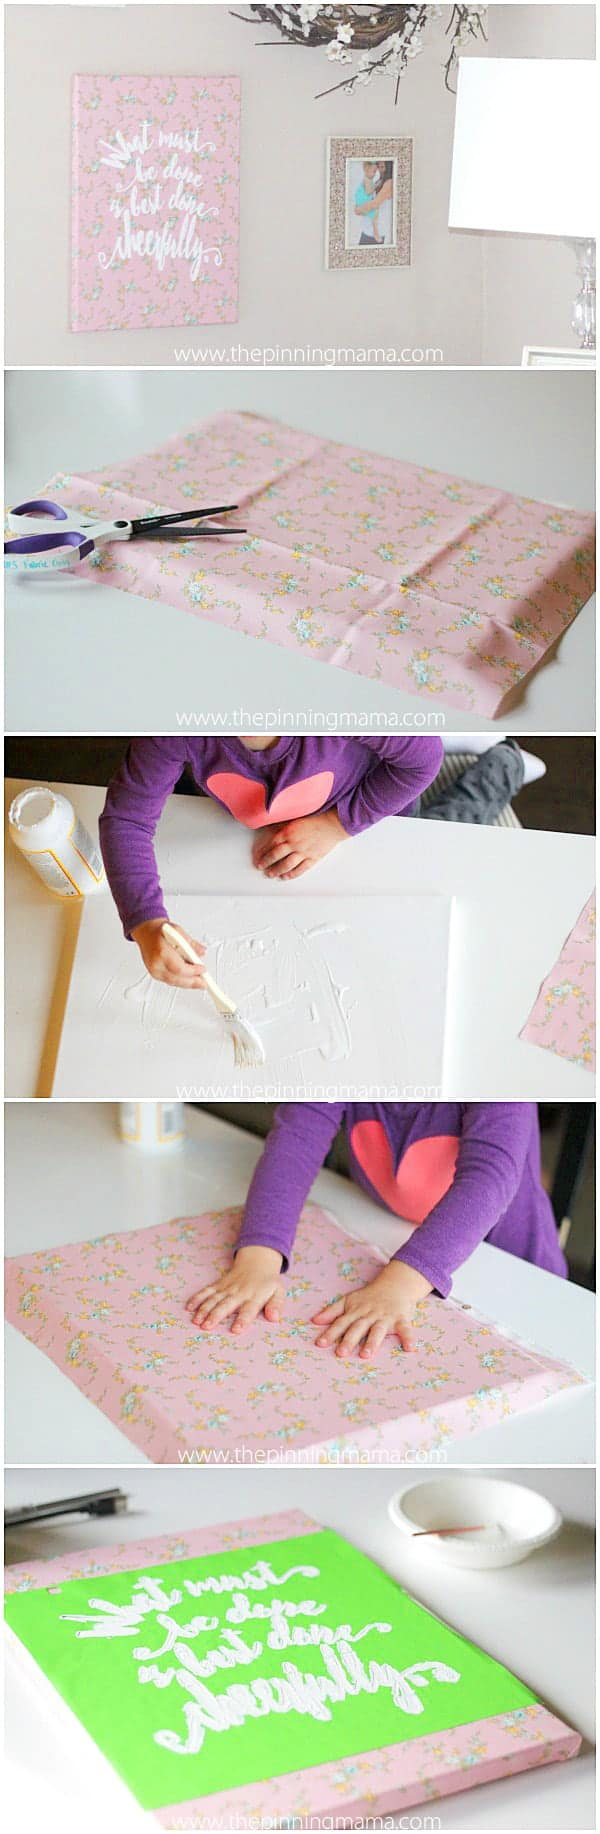 Perfect easy craft idea! Make this canvas with fabric and a stencil to match any space or decor. She even used Little House on the Prairie Fabric for her daughter's room. Too cute!